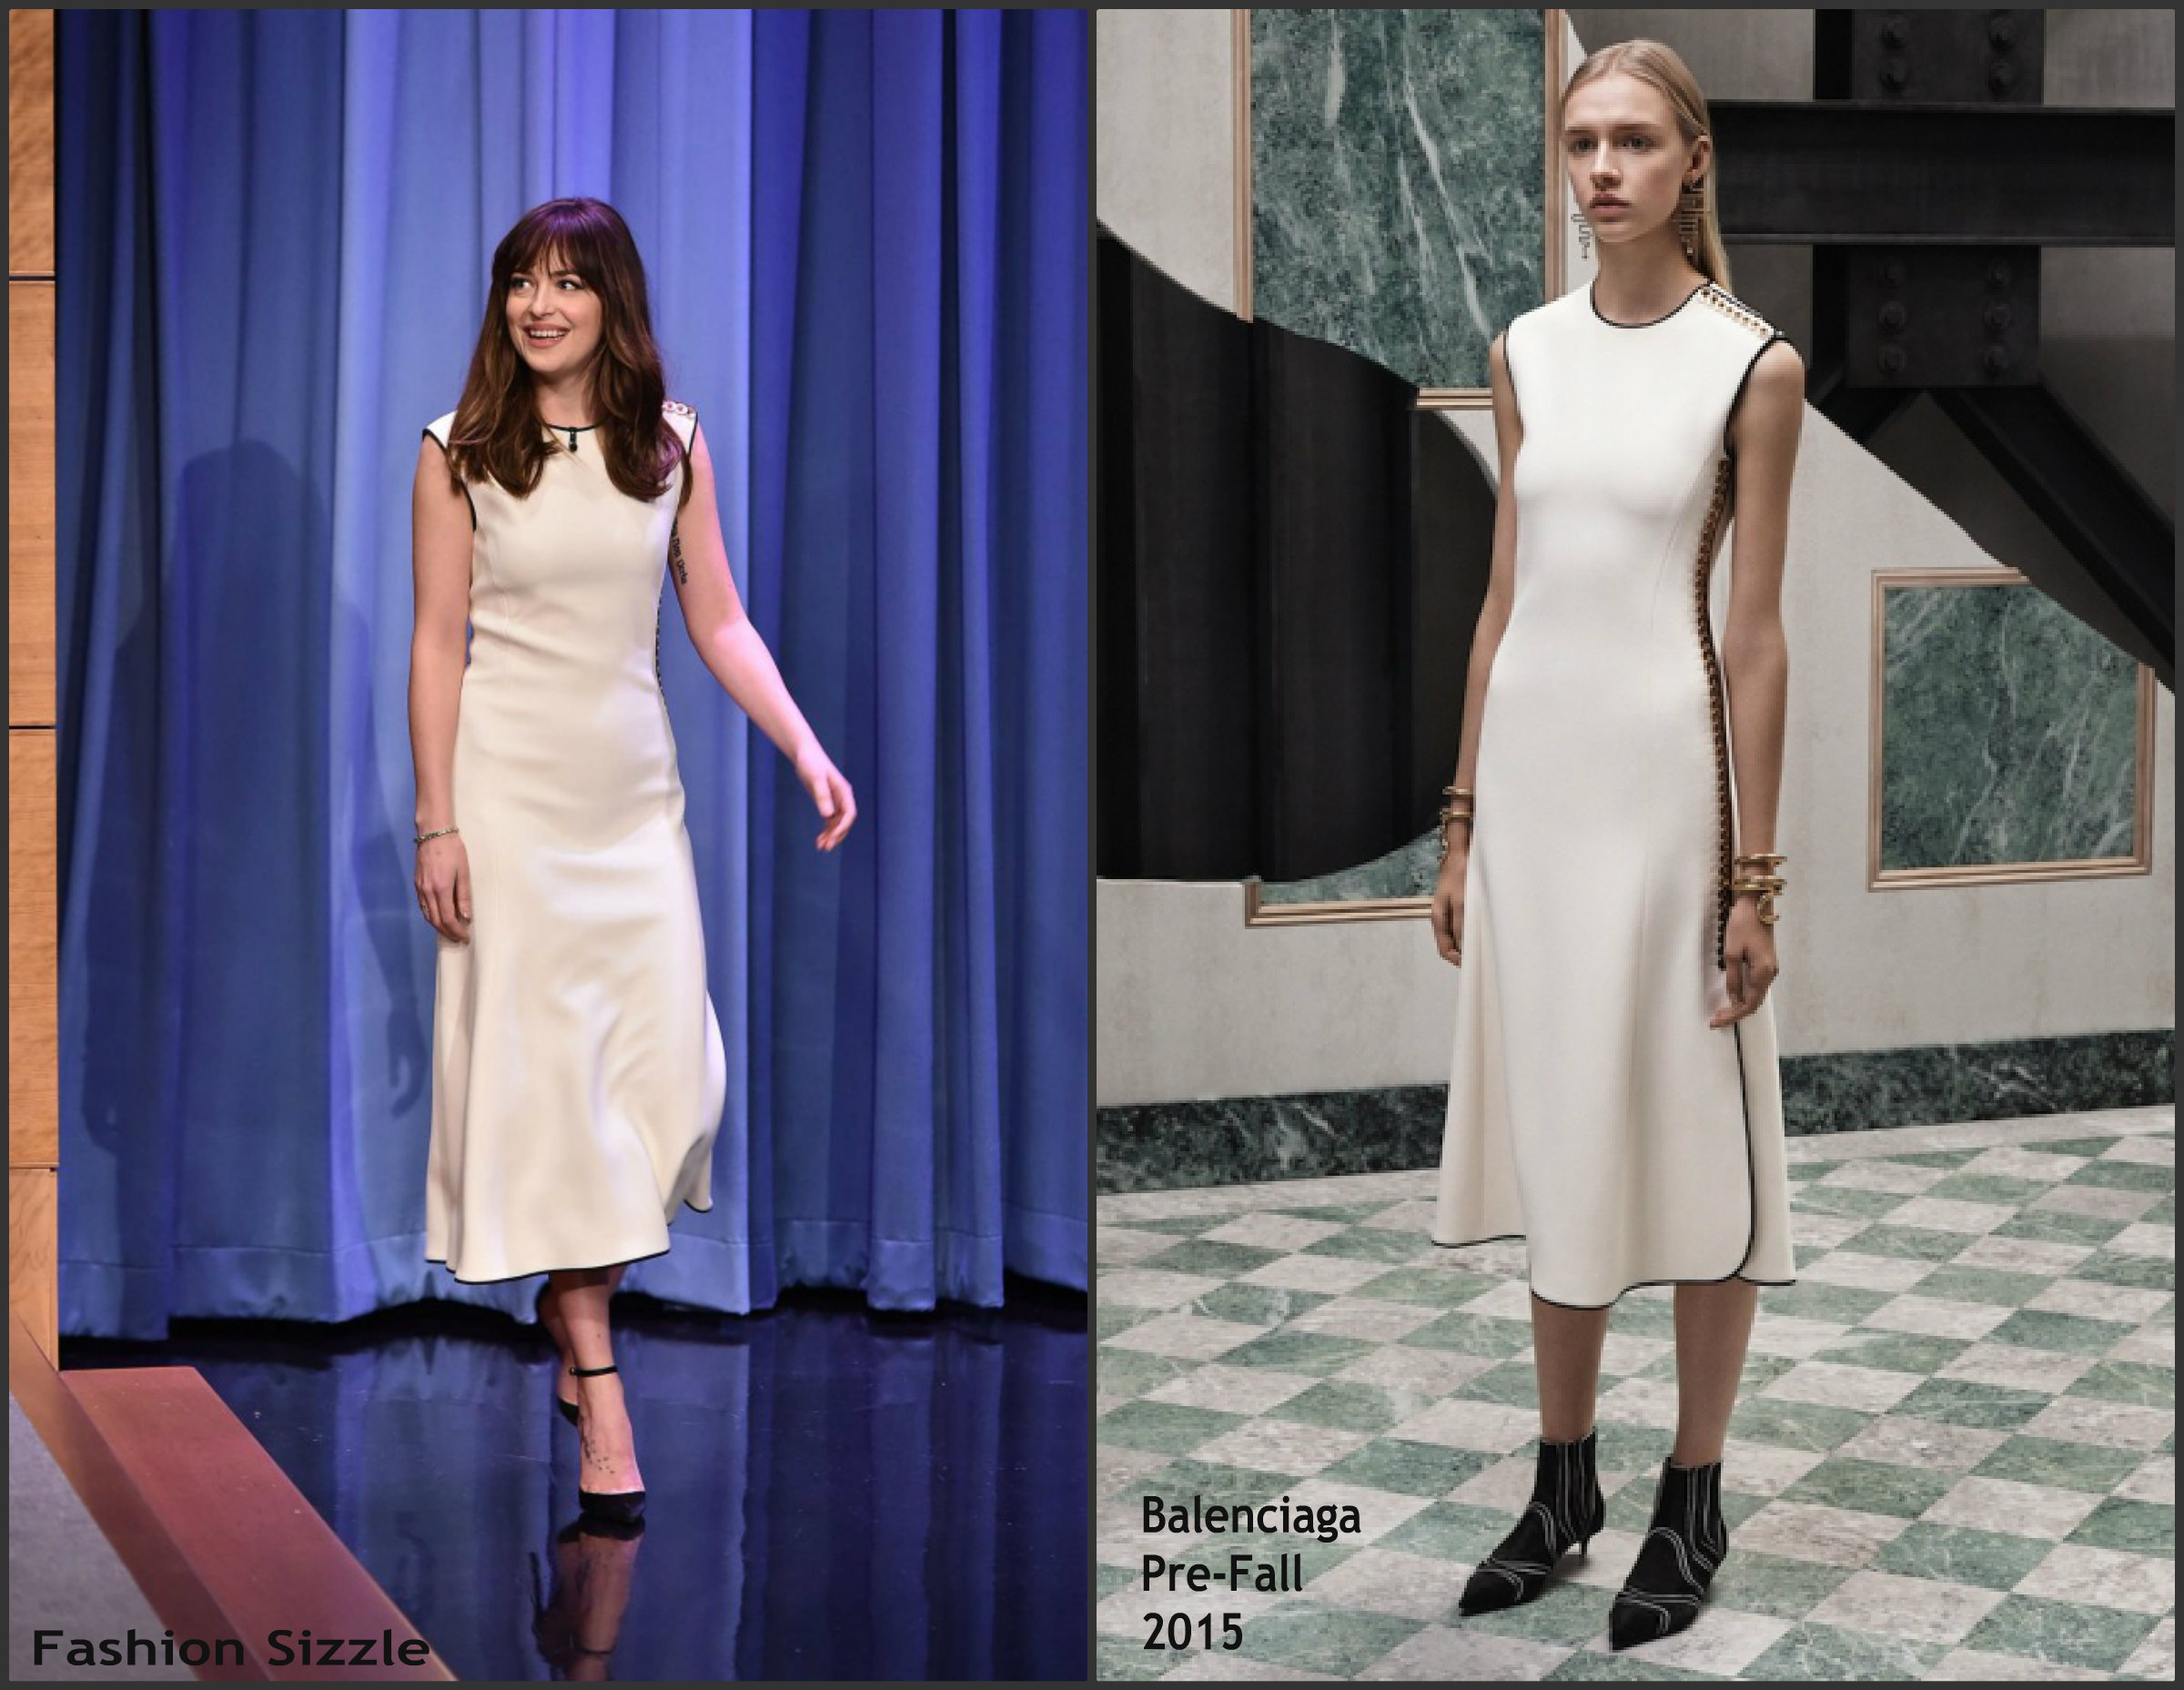 Dakota-Johnson-In-Balenciaga-at-the-Tonight-Show-Starring-Jimmy-Fallon